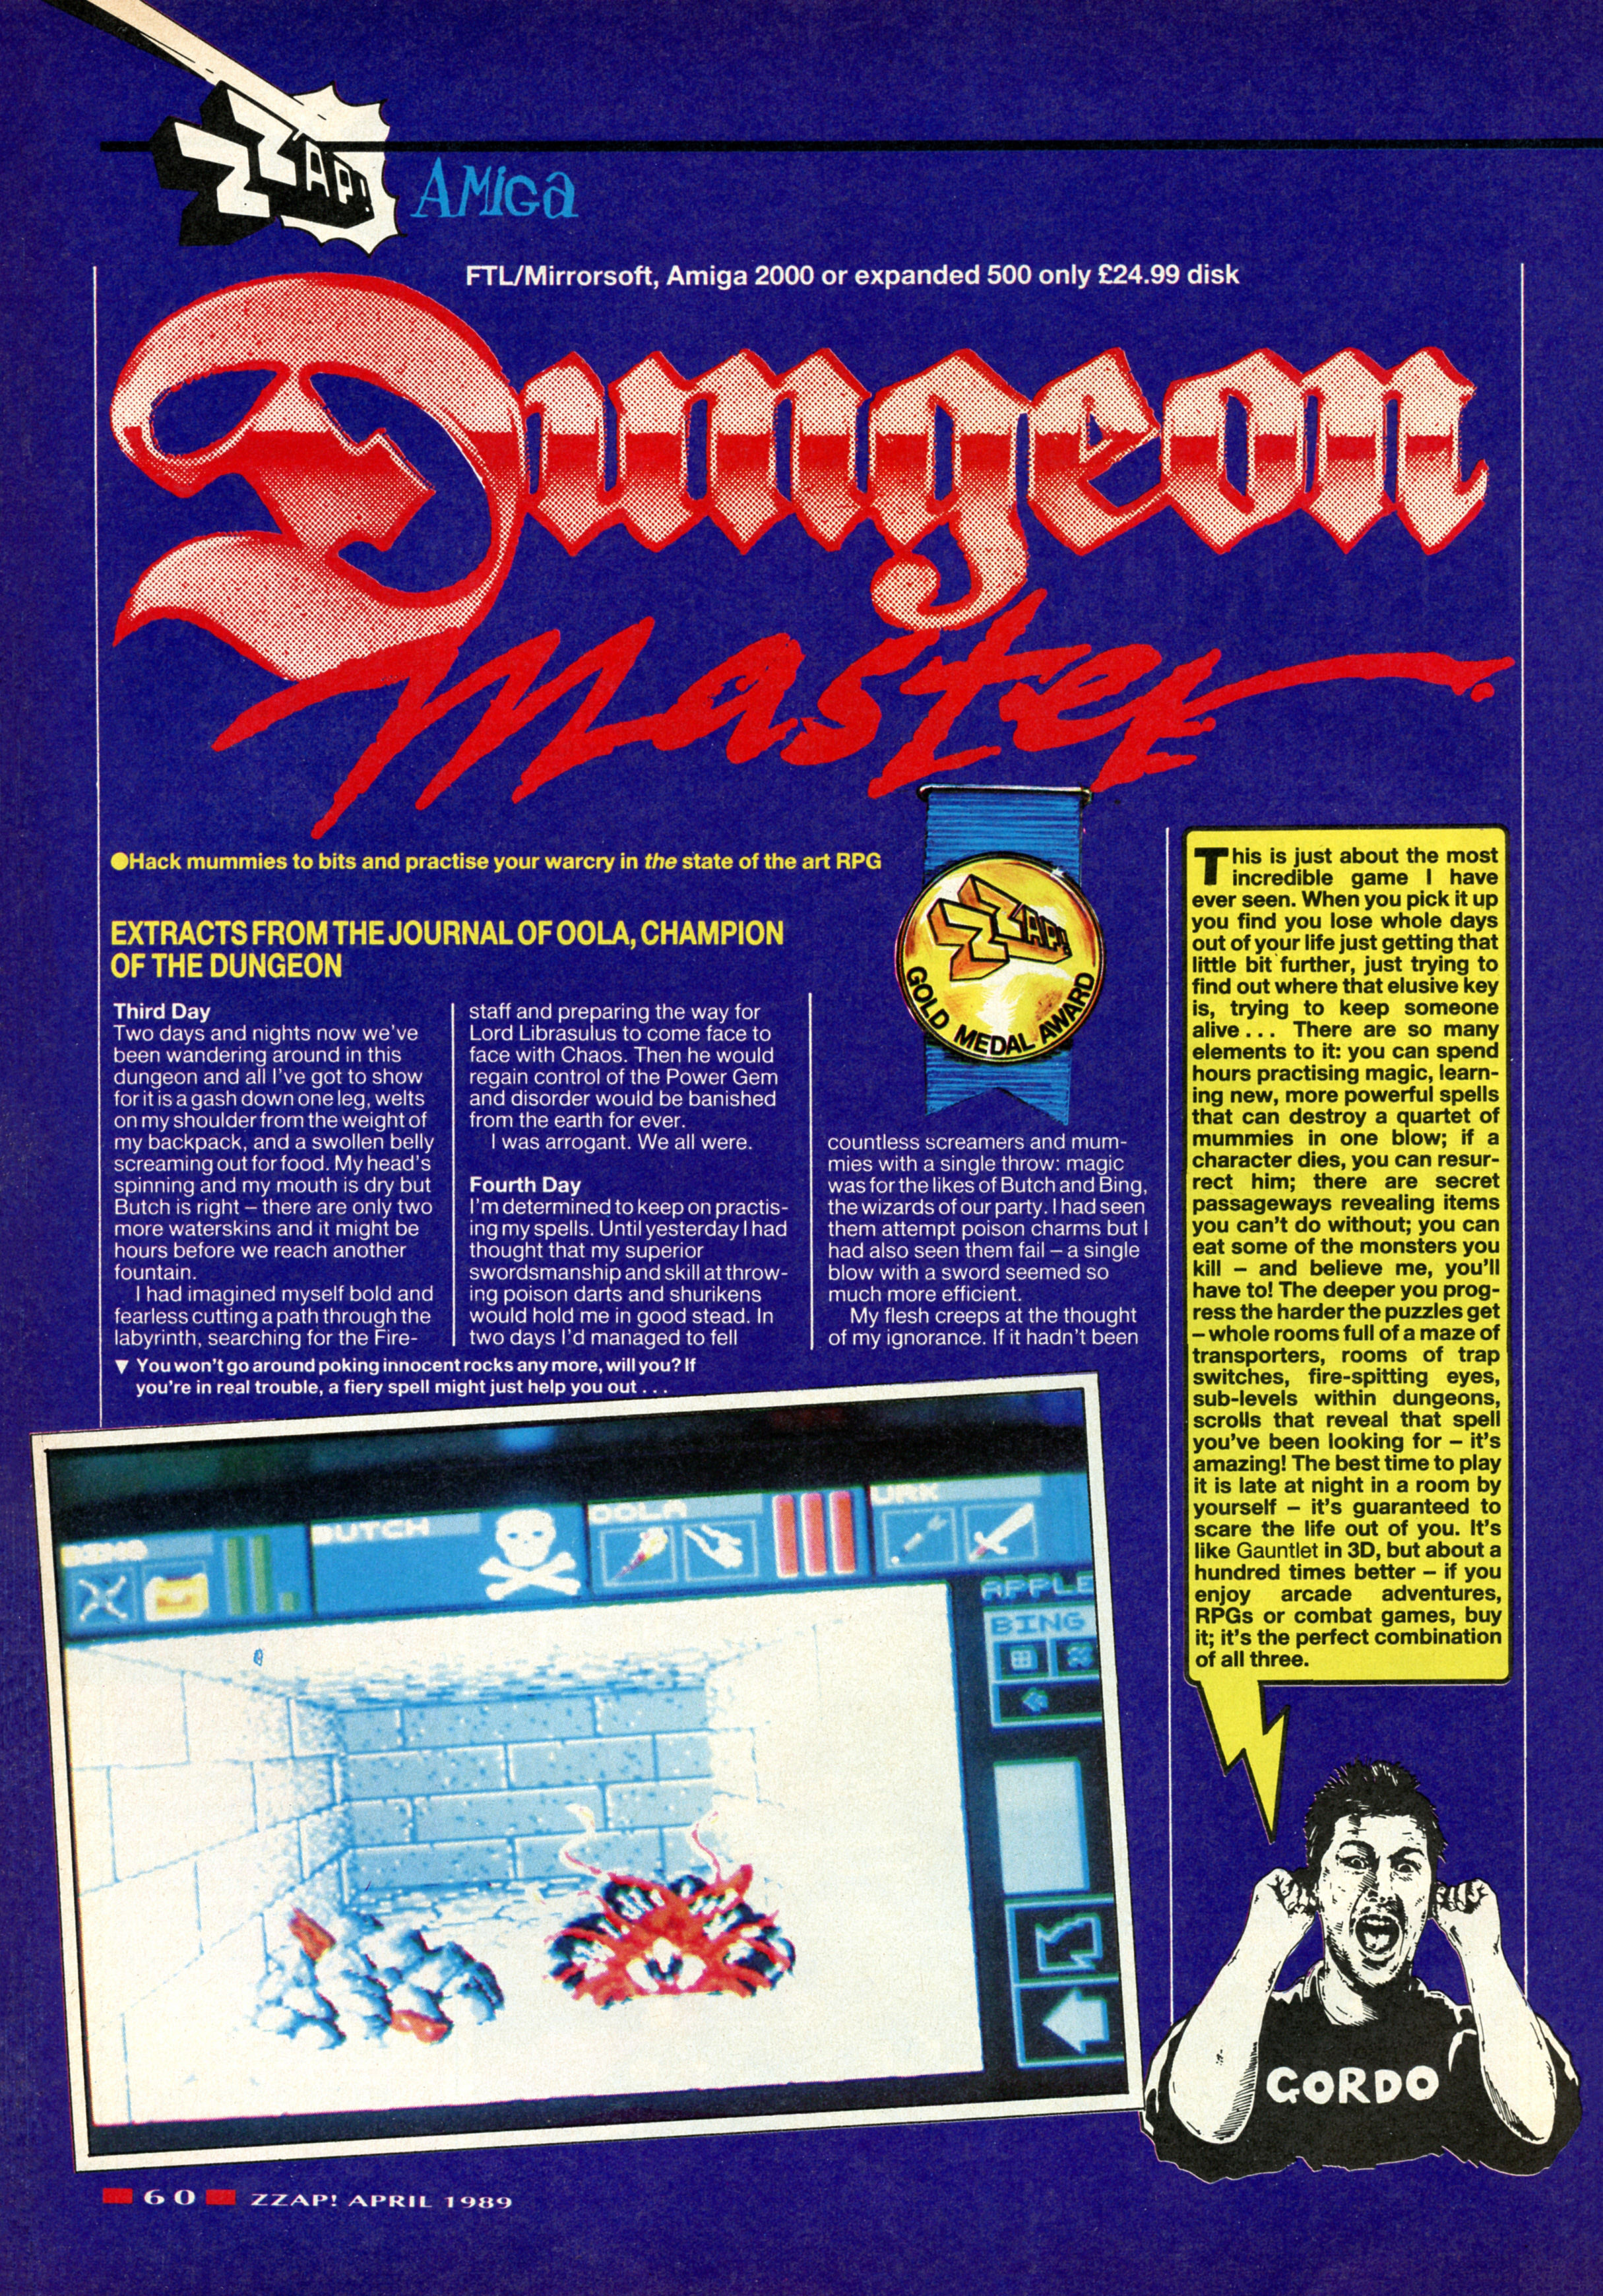 Dungeon Master for Amiga Review published in British magazine 'Zzap', Issue #48, April 1989, Page 60